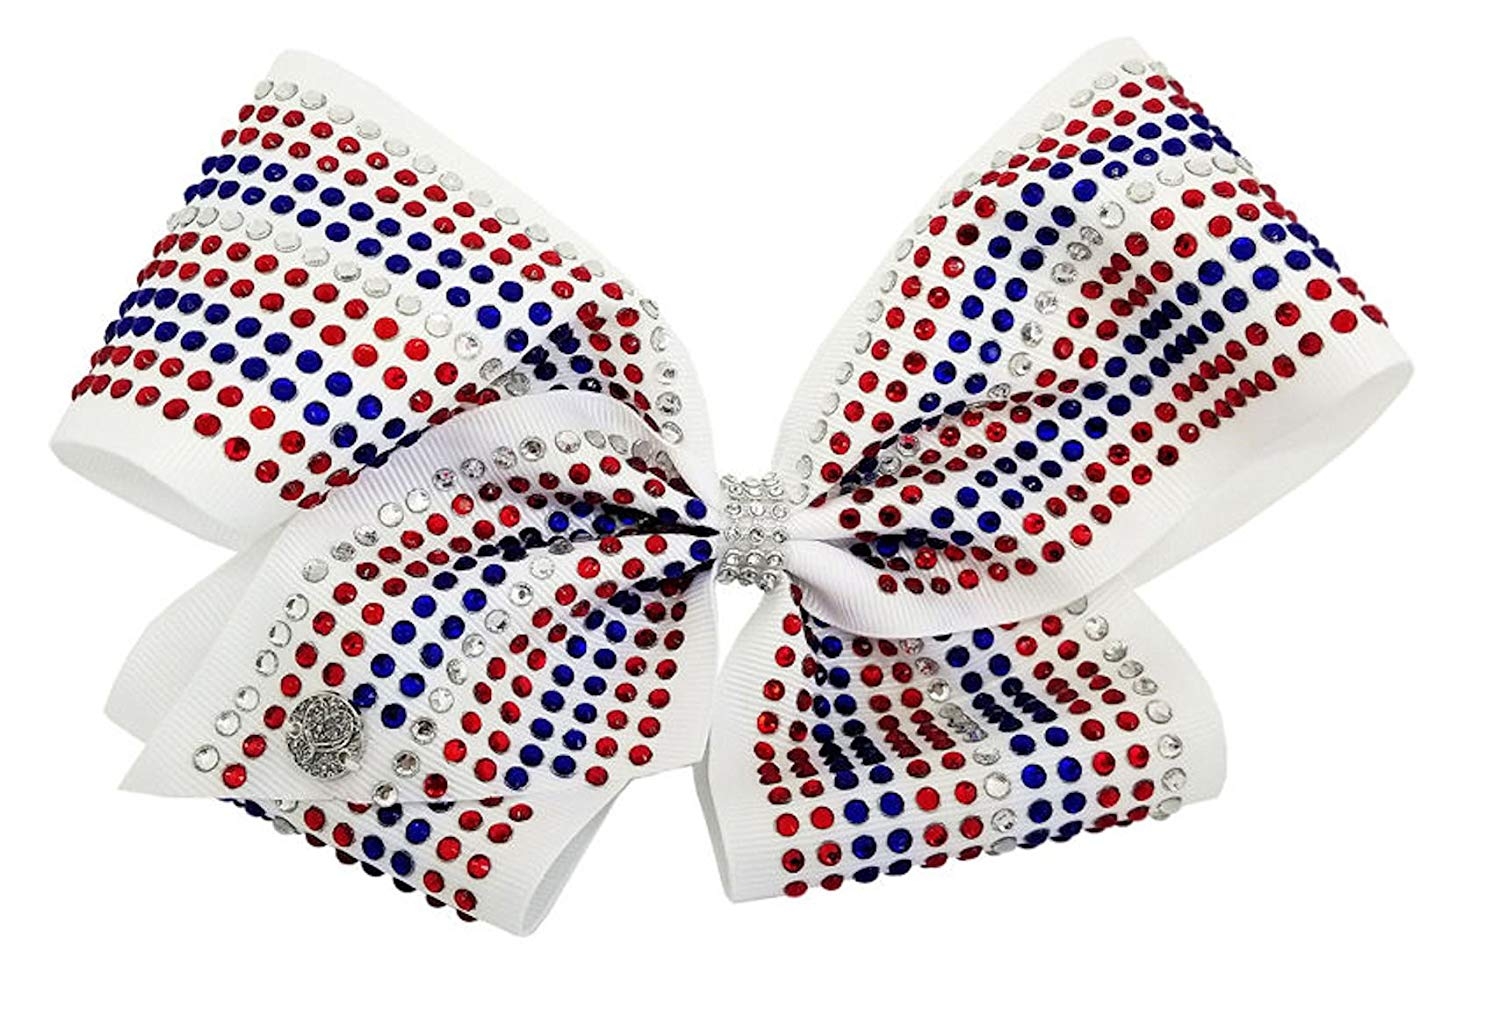 JoJo Siwa Signature Collection Hair Bow July 4th Edition - Red White and Blue Rhinestone